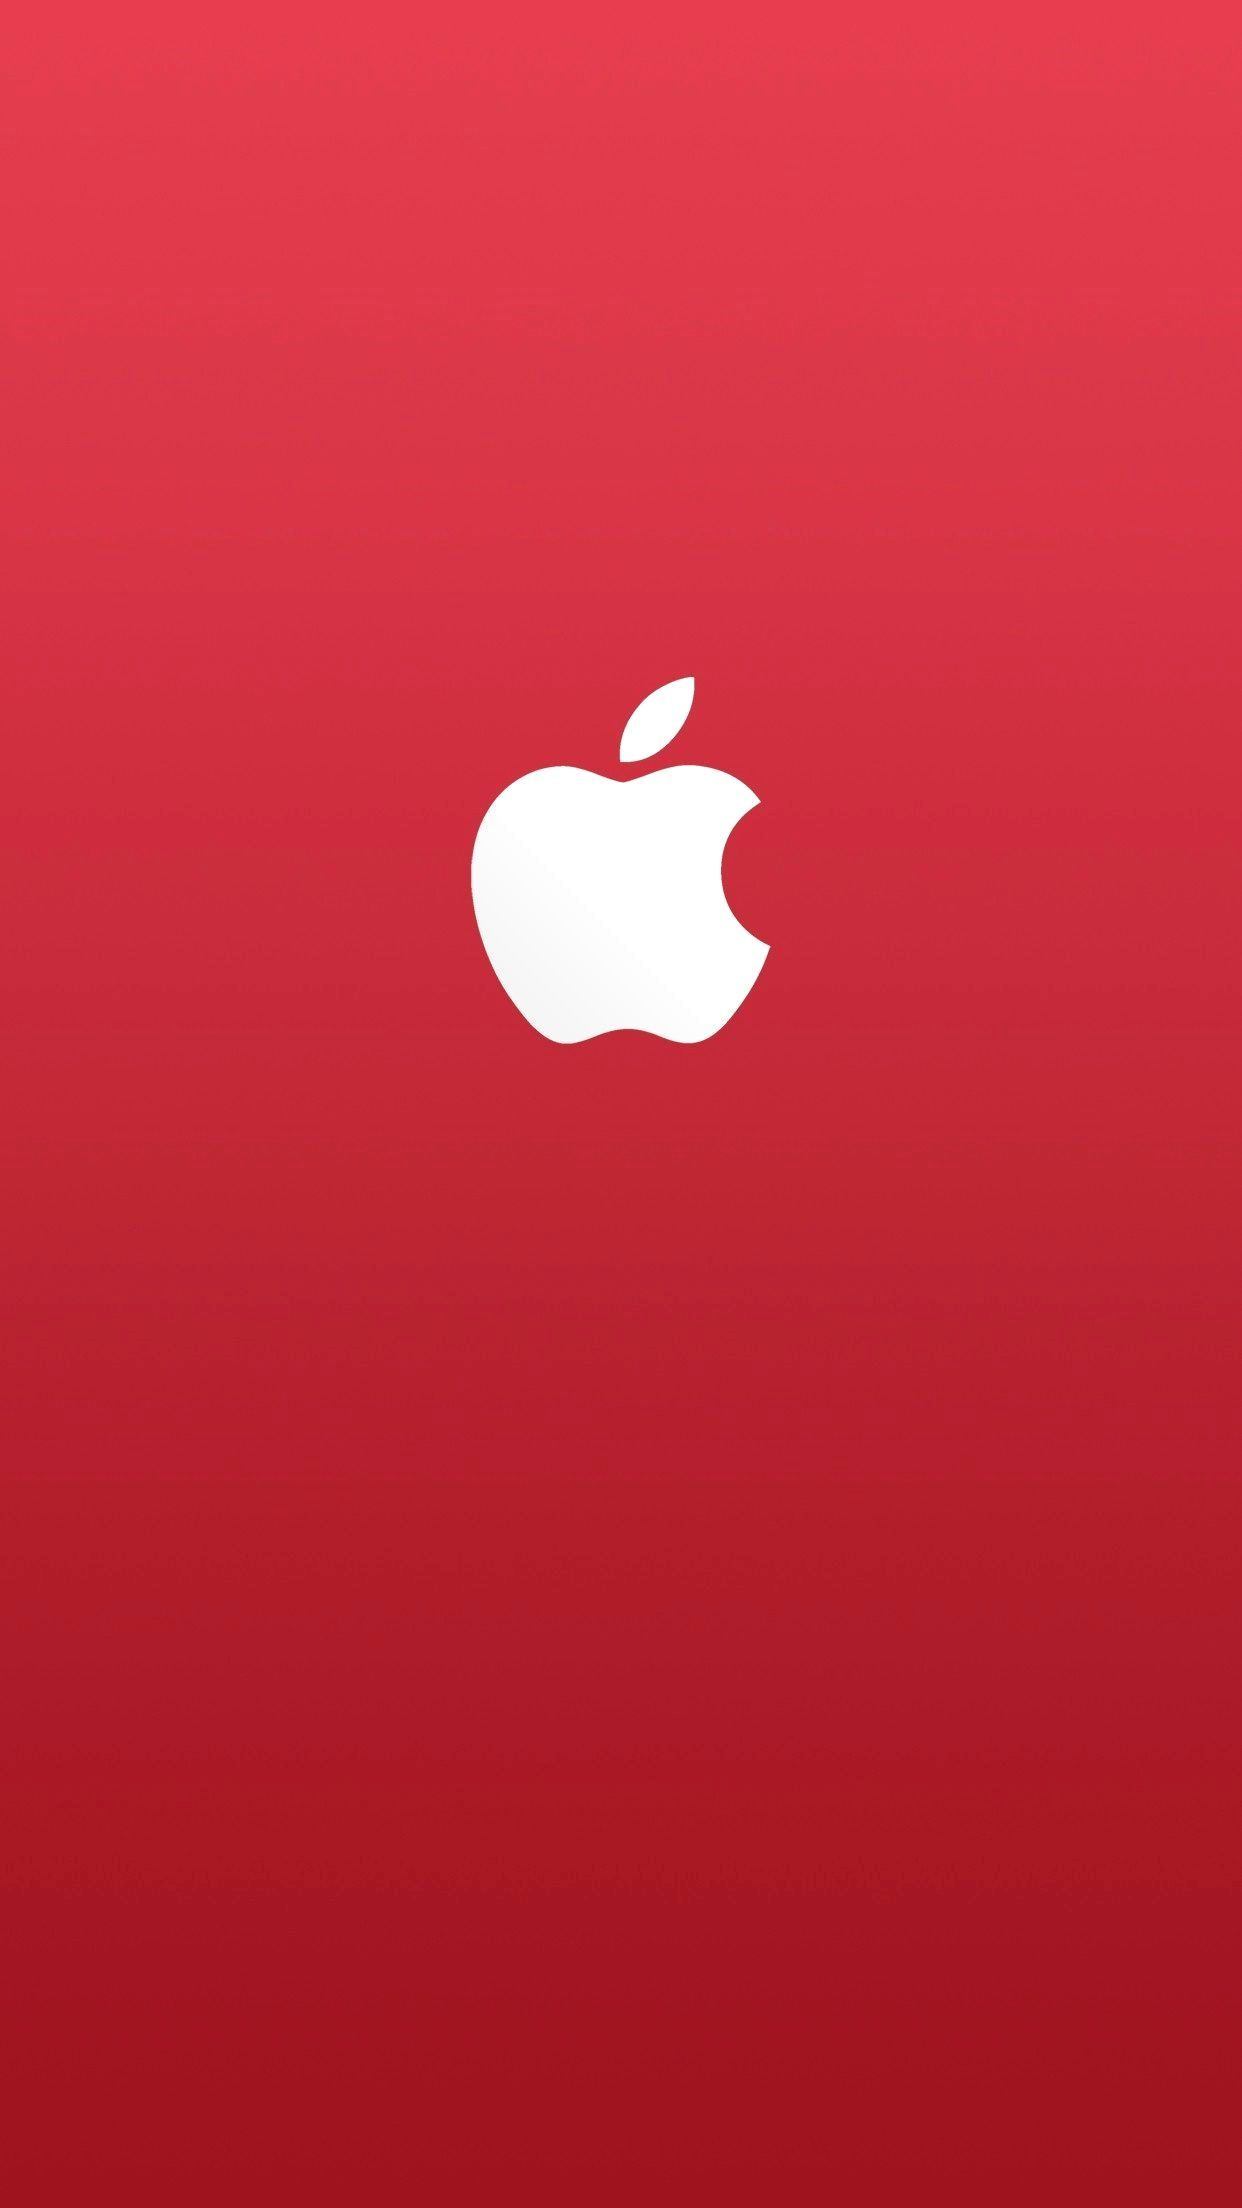 Red Wallpaper 4k Iphone X Gallery In 2020 Apple Logo Wallpaper Iphone Apple Wallpaper Apple Wallpaper Iphone